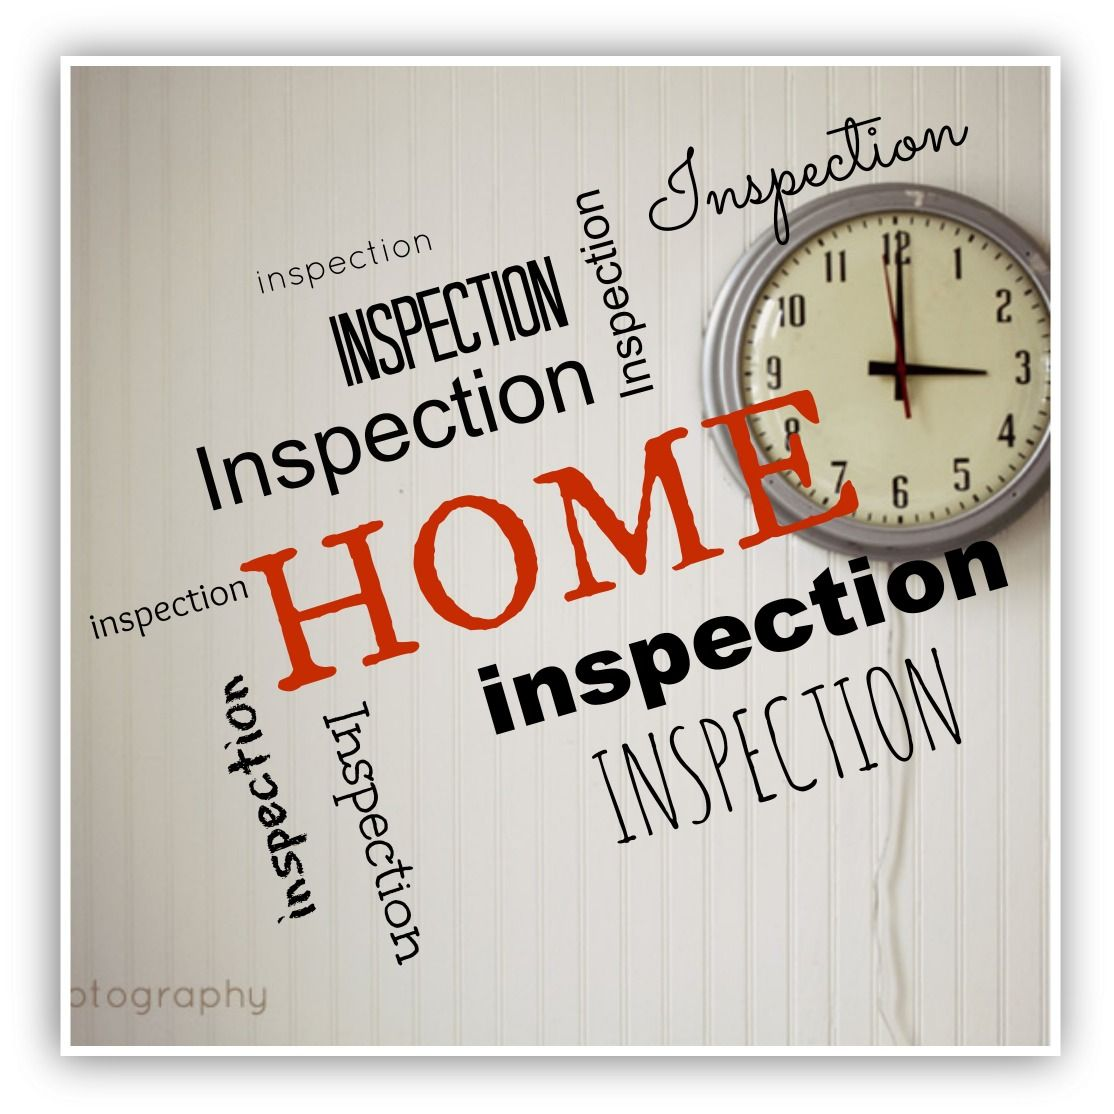 What can I expect from a Home Inspection? Home